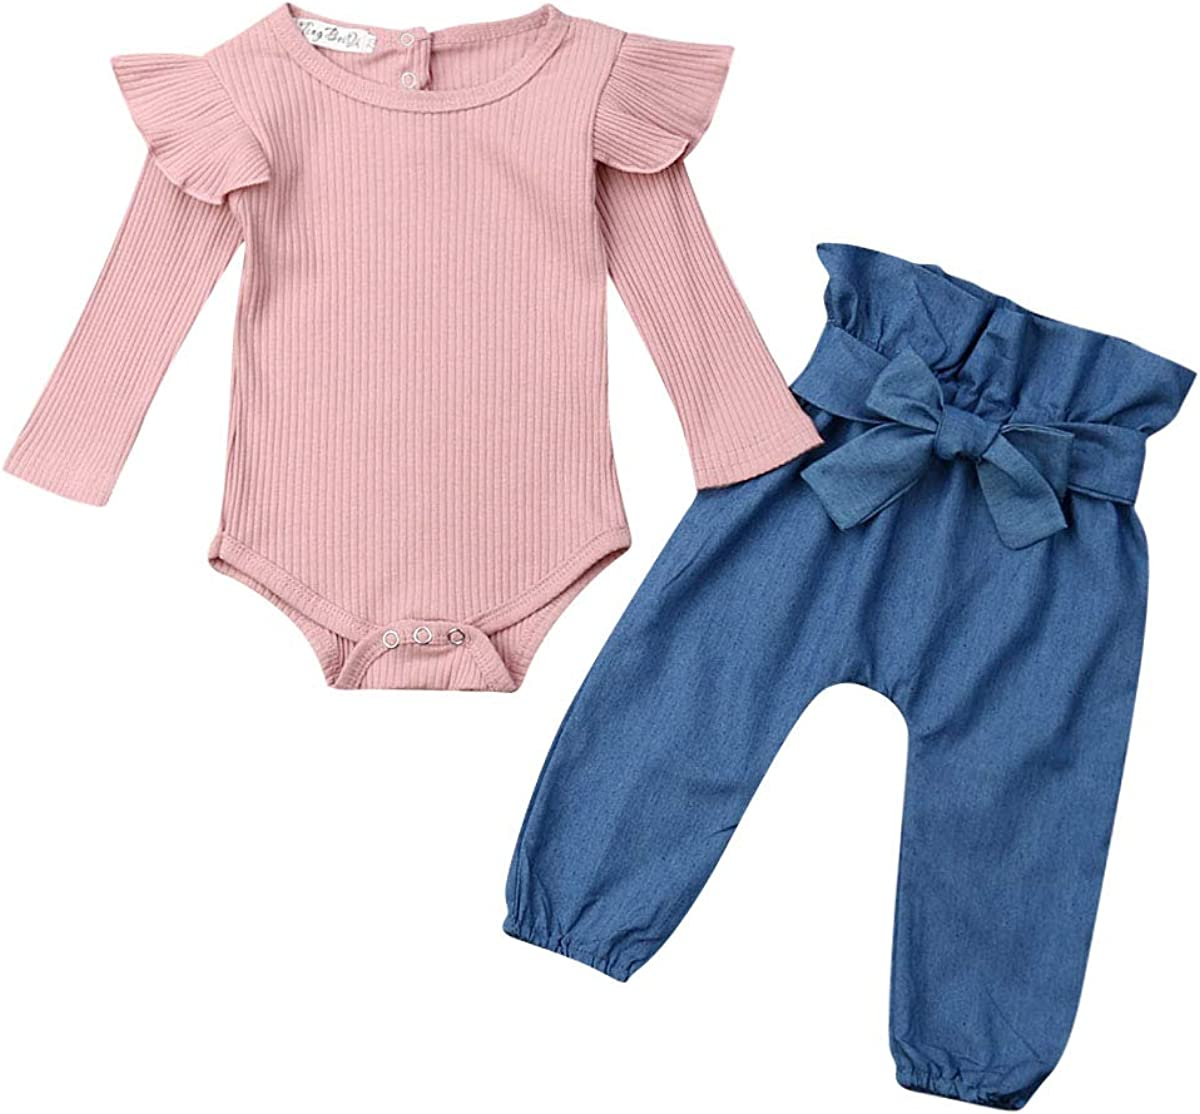 3PCS Outfits Baby Girls Ruffle Bodysuit Max 51% OFF Denim Jeans Romper Tops specialty shop